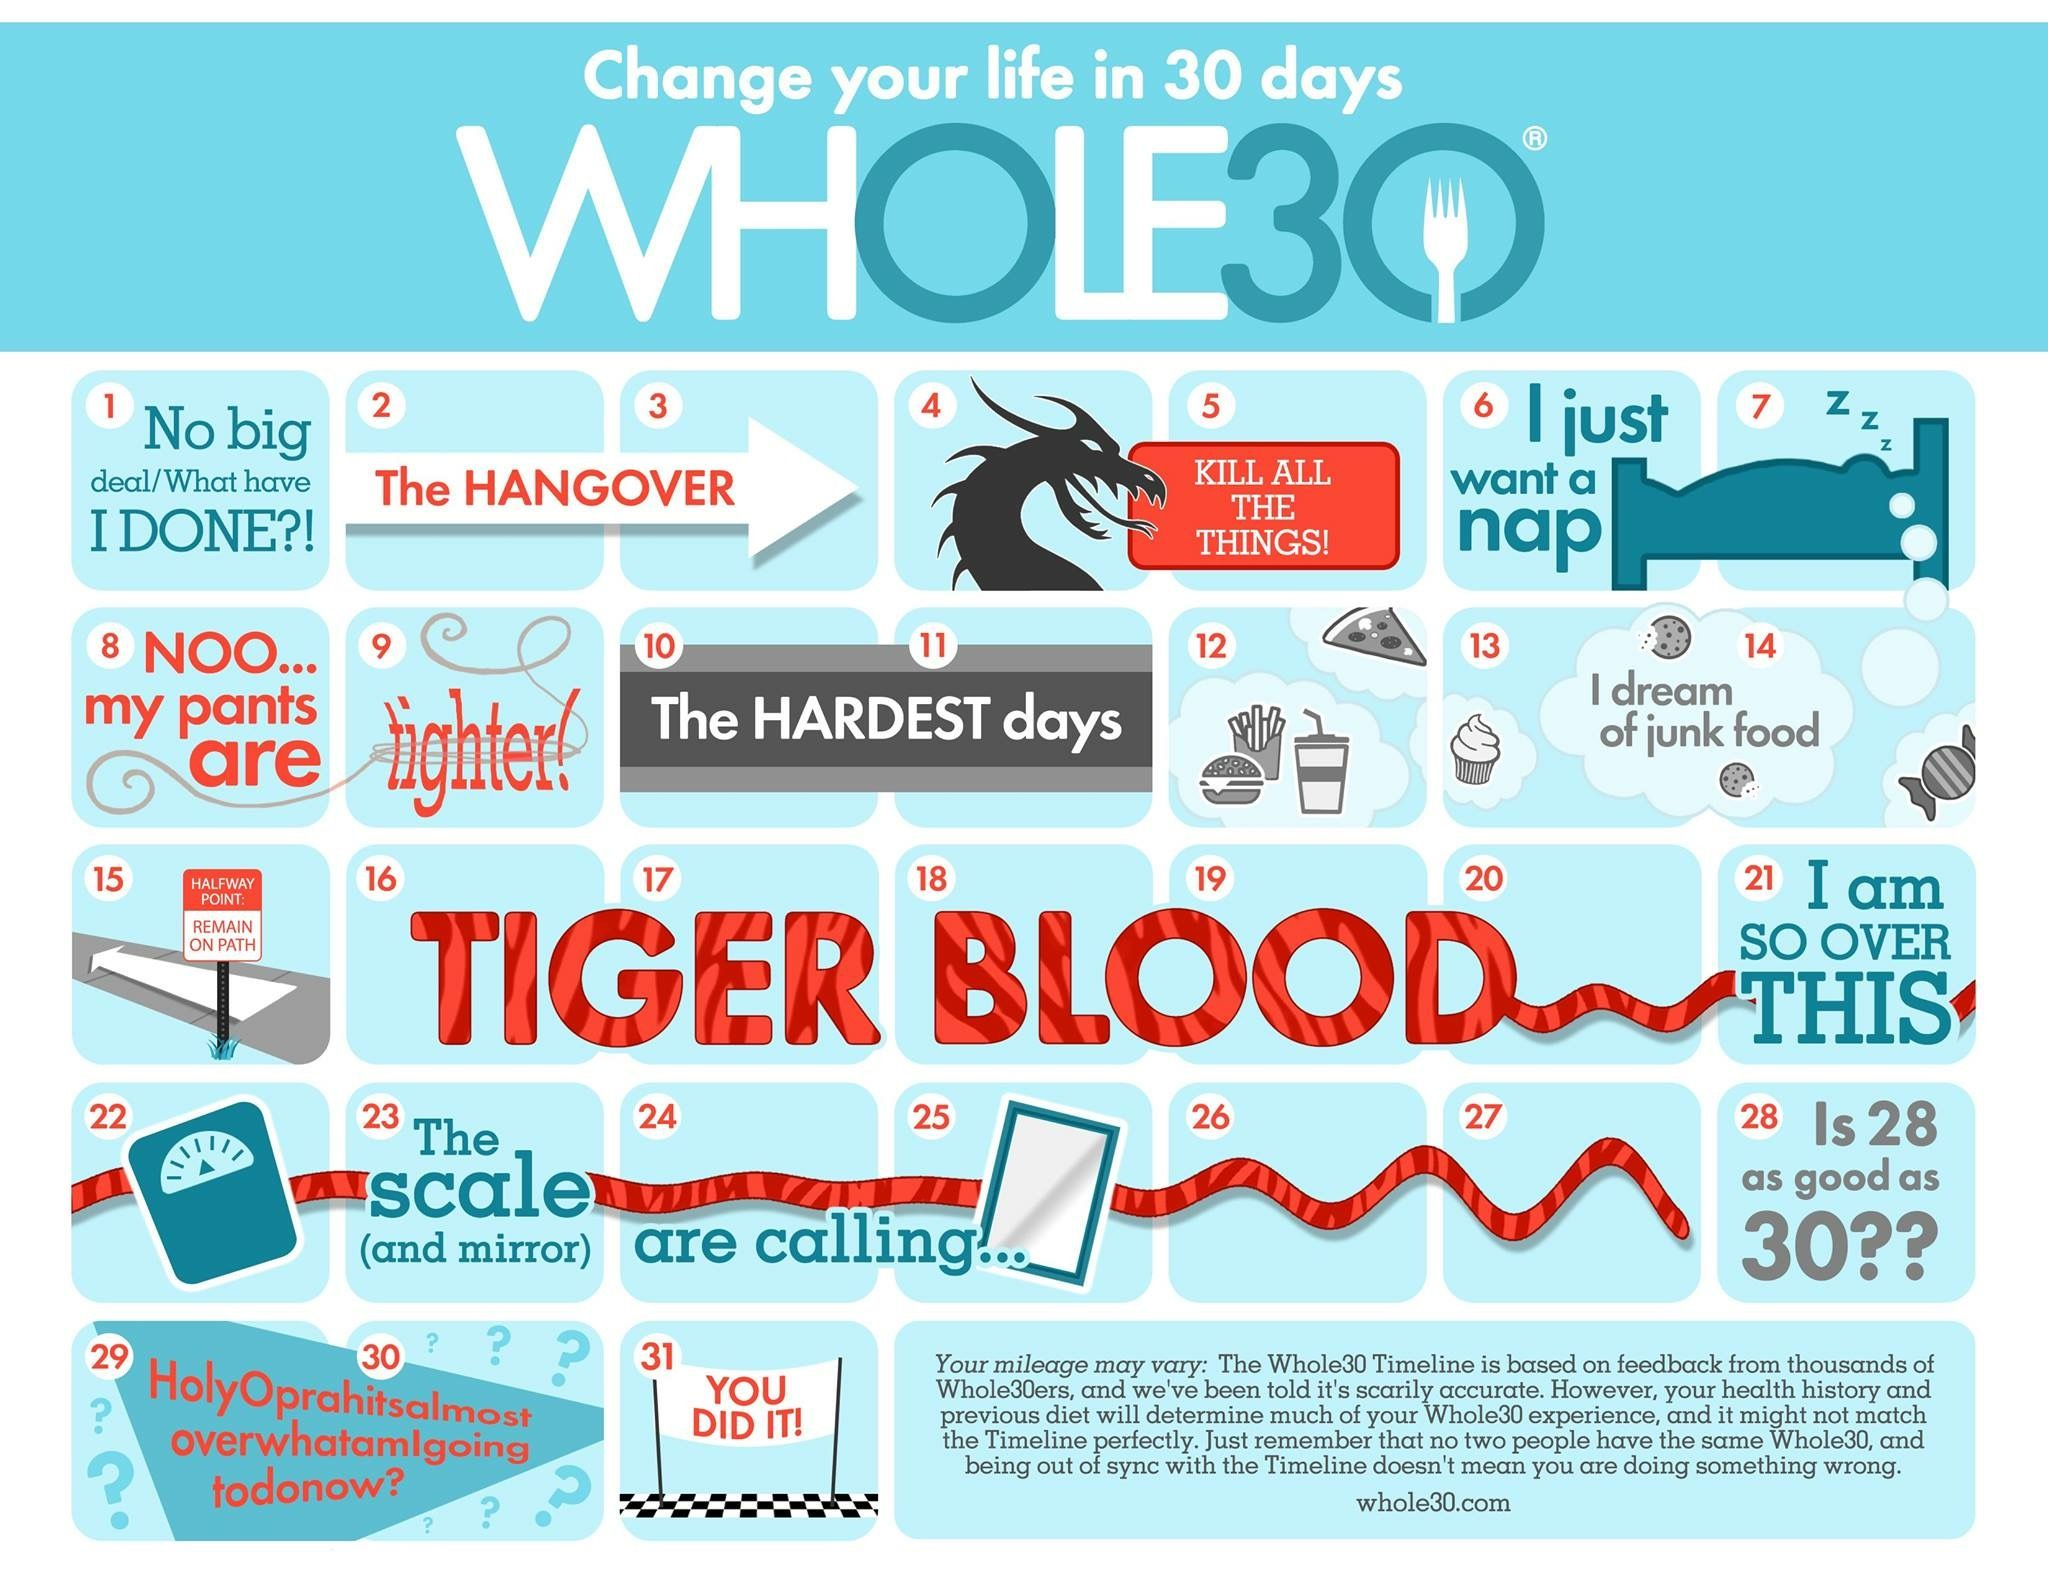 Whole 30 Calendar: What To Expect Dayday | Whole 30